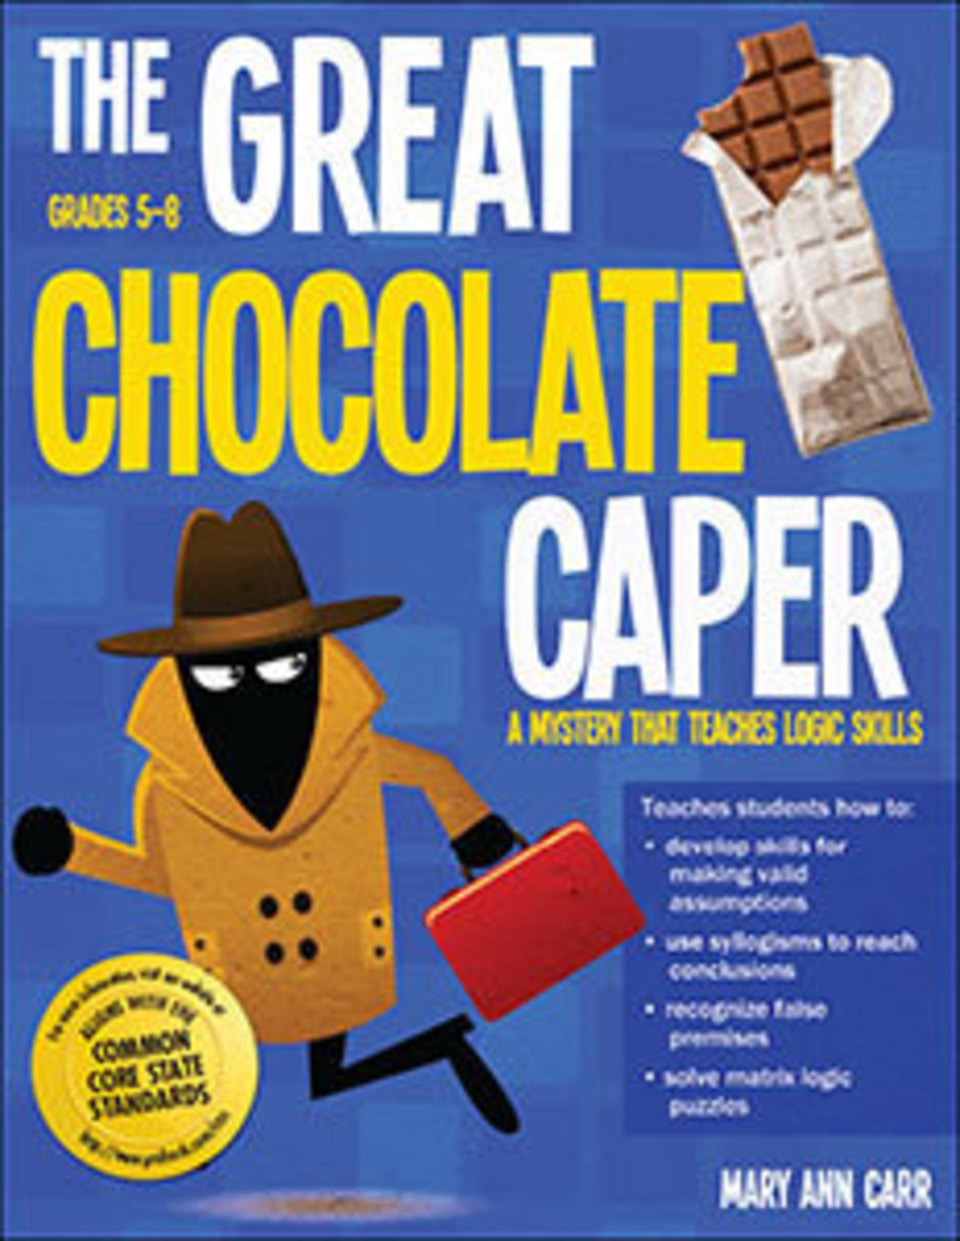 Great chocolate caper20160512 3781 ns3221